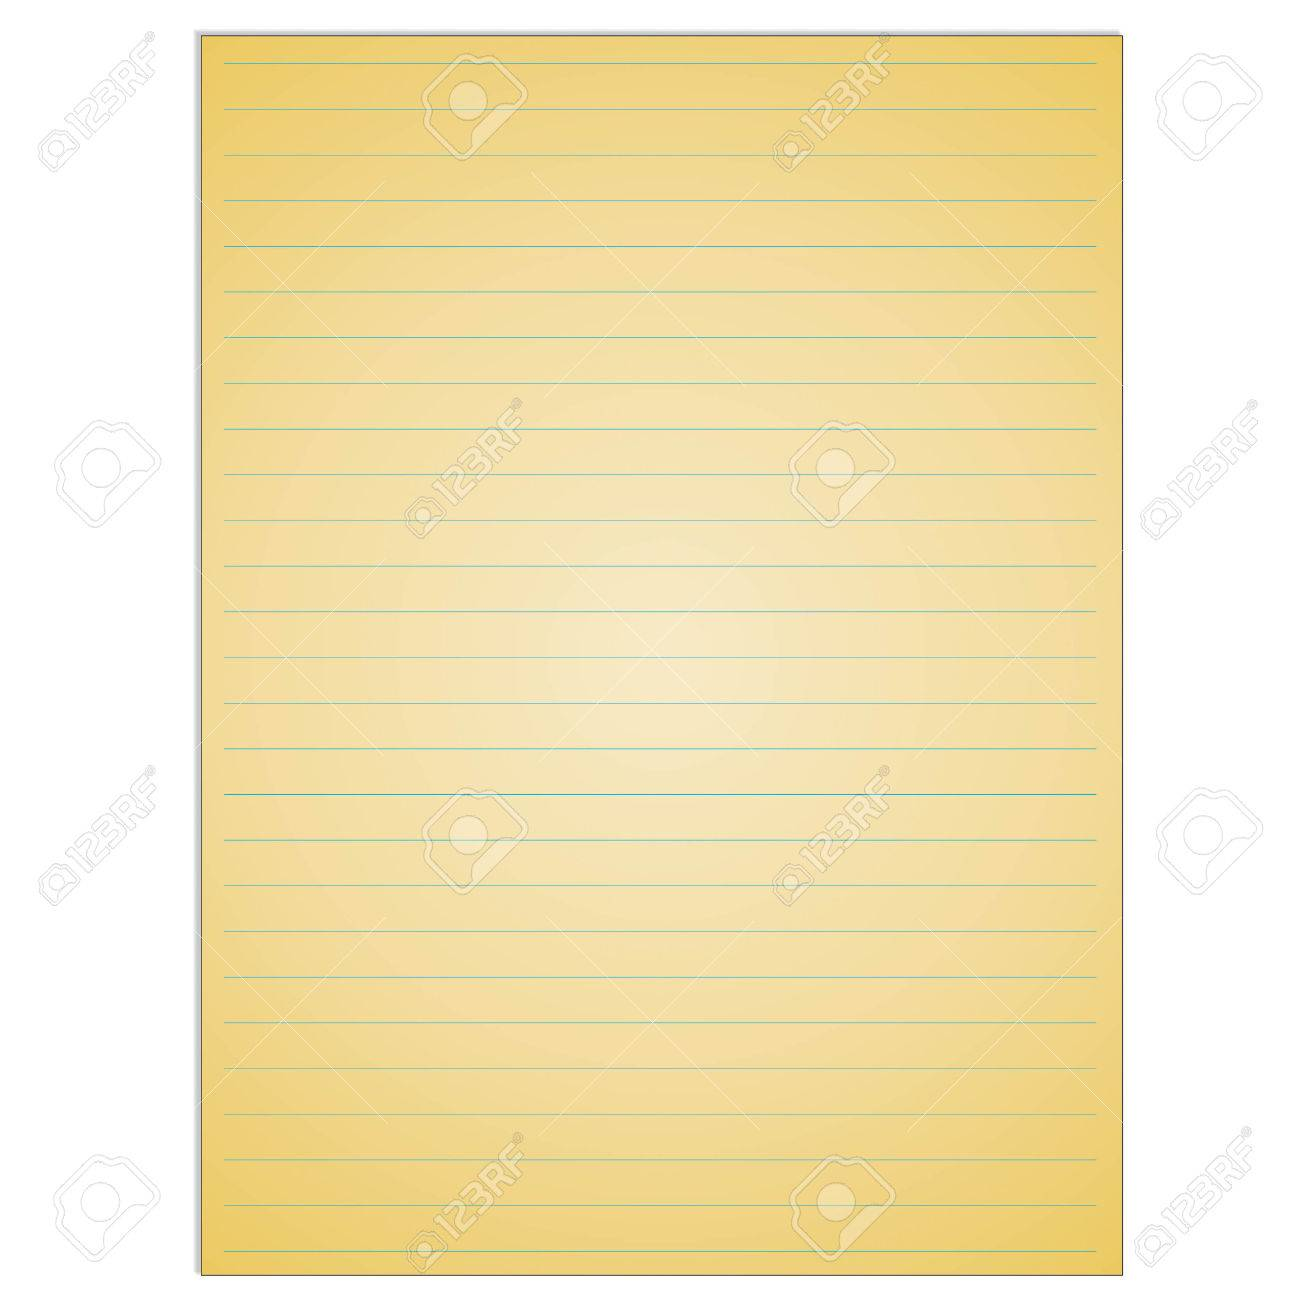 School Notebook Paper Sheet Exercise Book Page Background Lined Notepad Backdrop Stock Vector